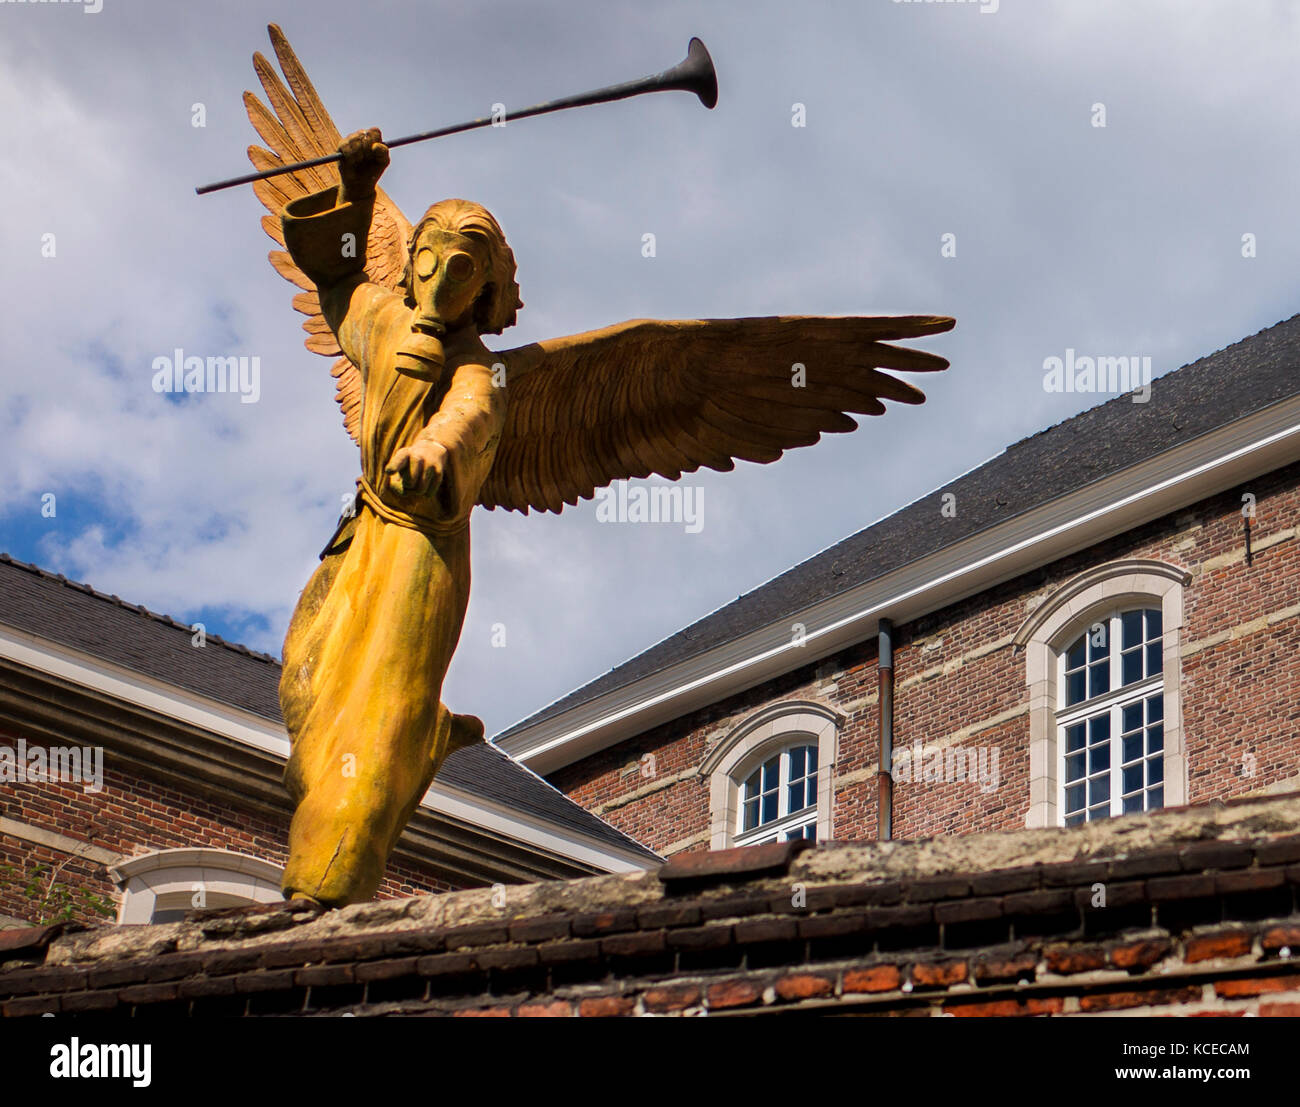 statue of one of the seven angels of the apocalypse wearing a gas mask Ghent Belgium - Stock Image